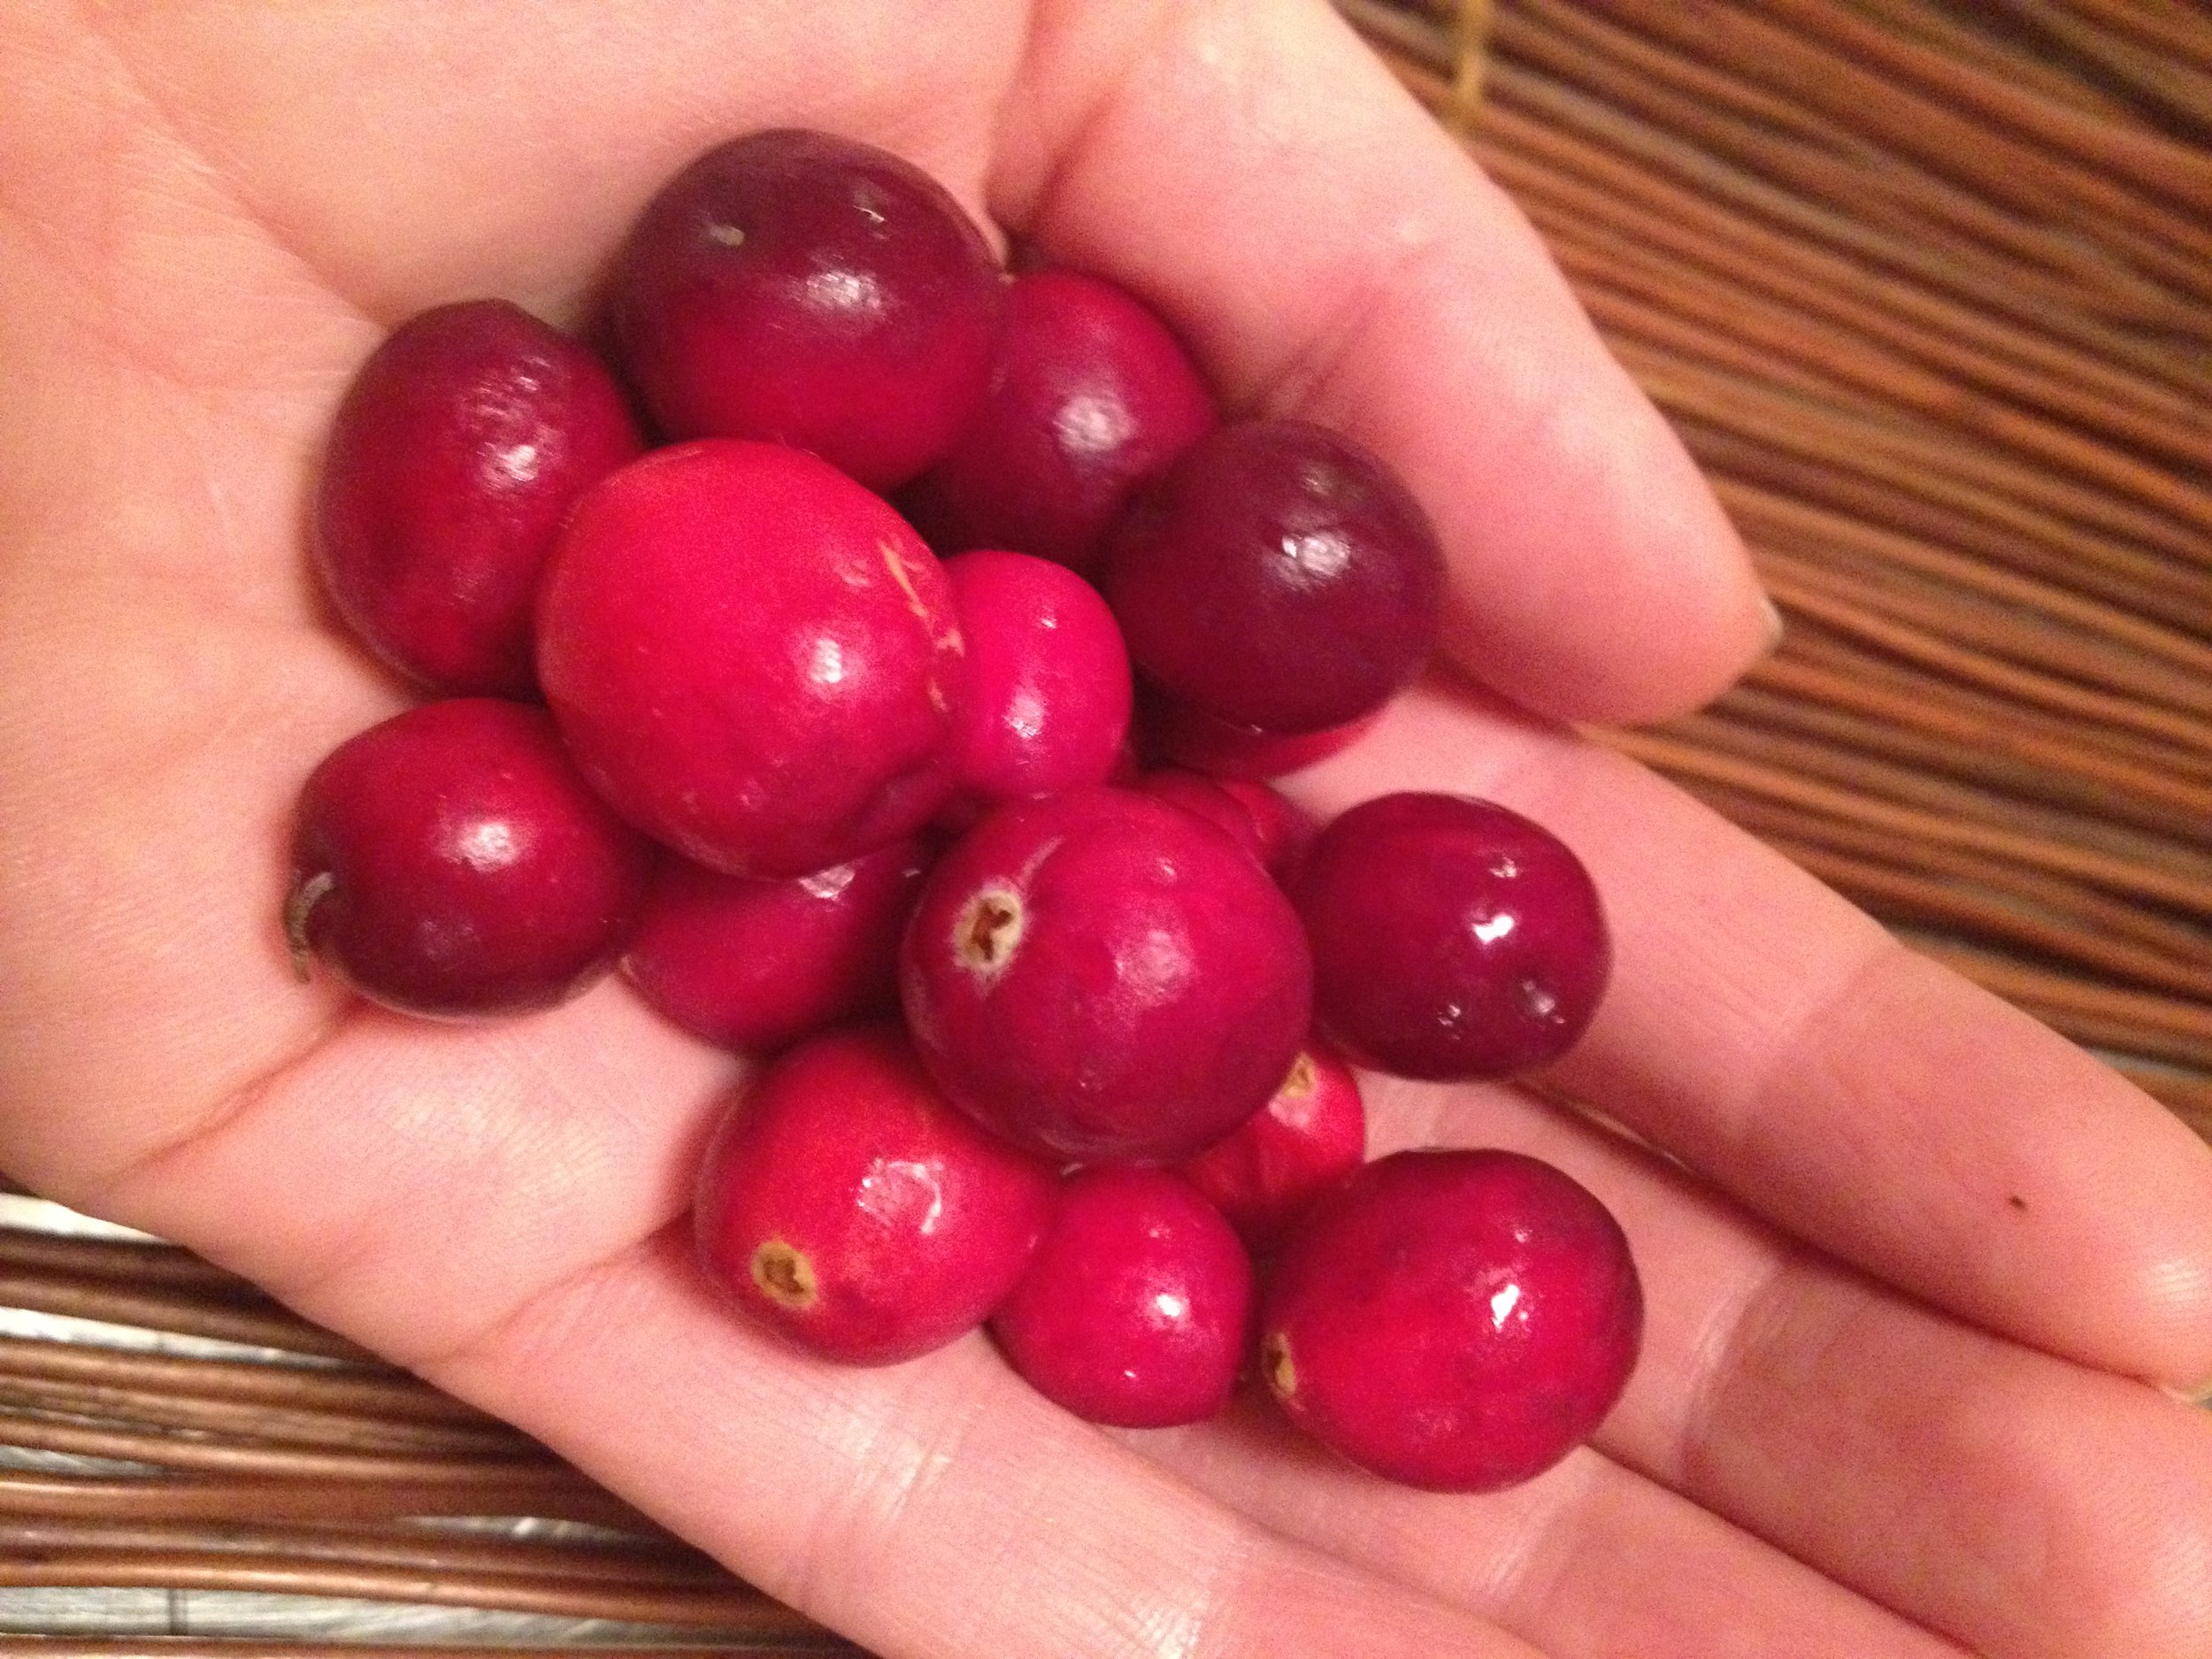 Fresh Organic Cranberries. I love the crimson hue they posses.